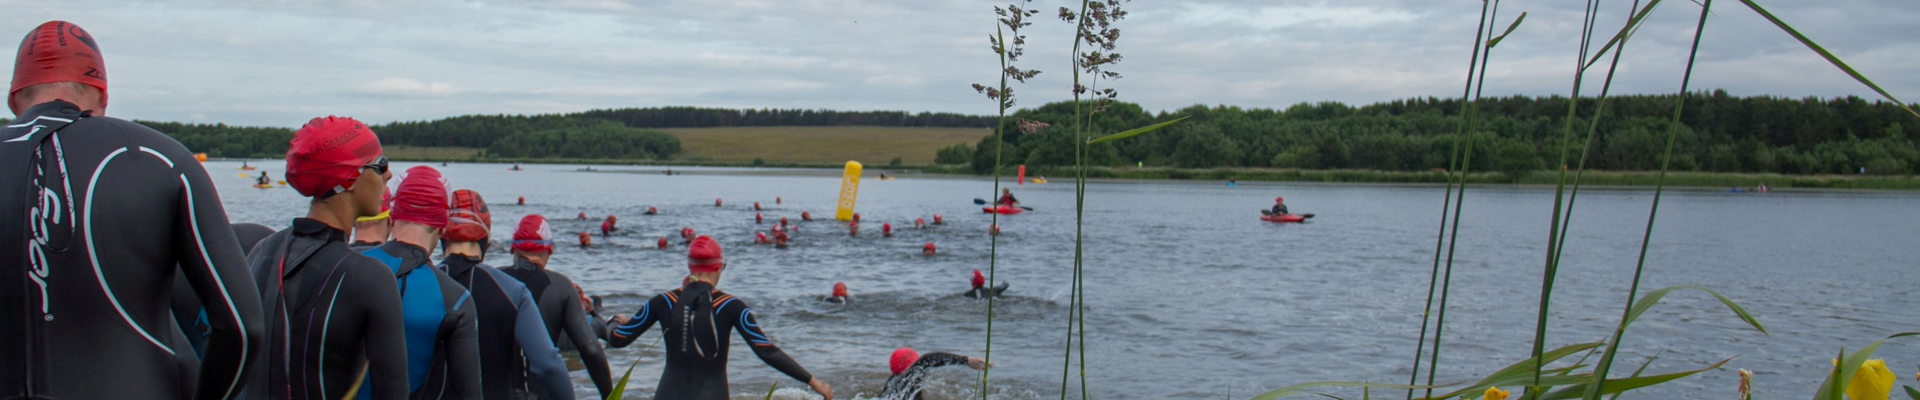 Northumberland Triathlon 2017